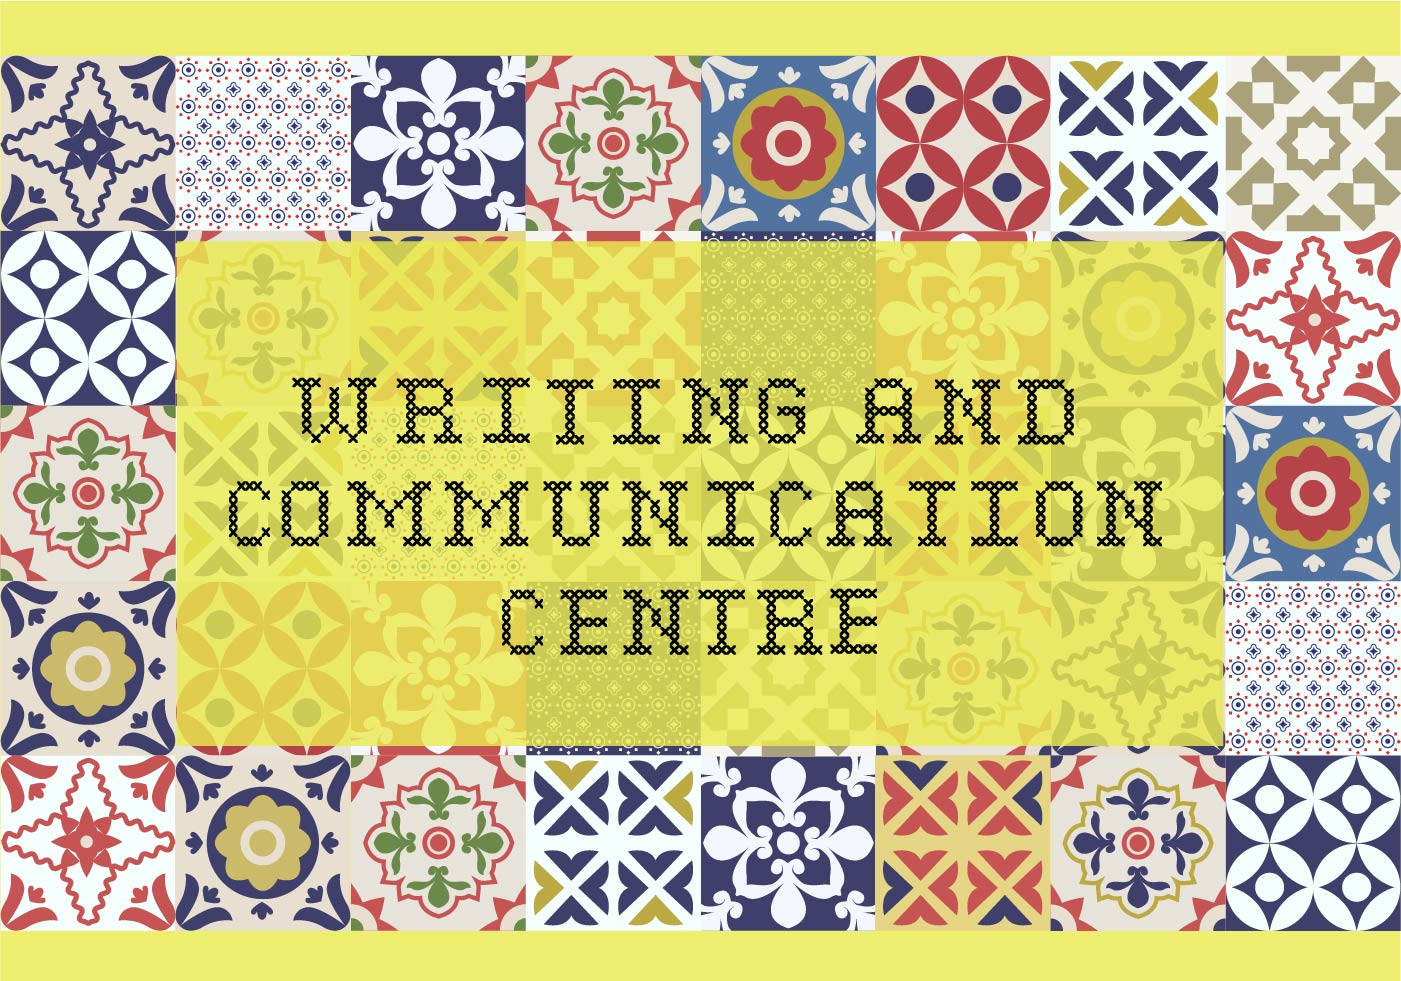 Writing and Communication Centre in a quilt